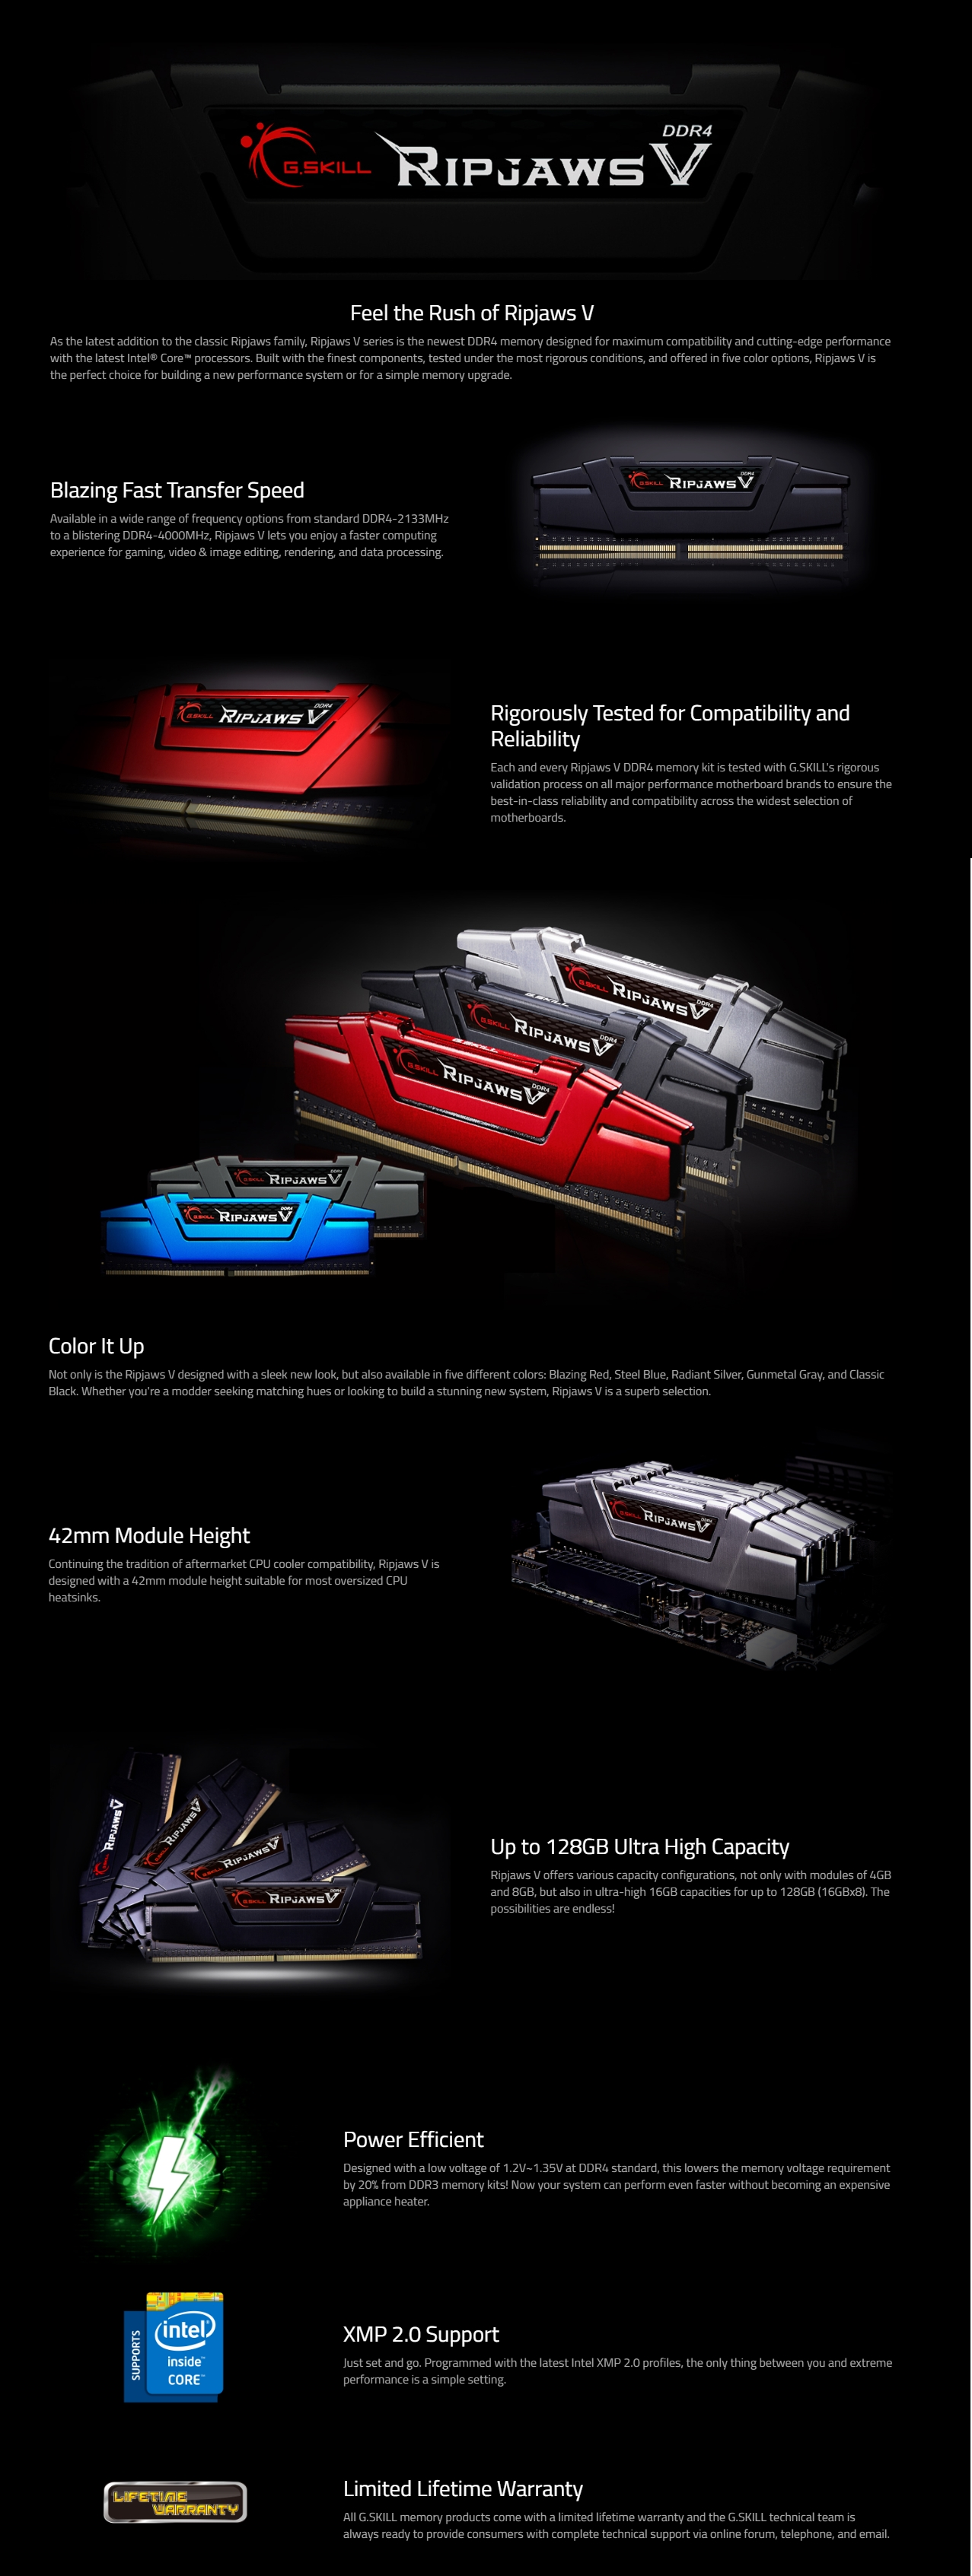 A large marketing image providing additional information about the product G.Skill 32GB Single DDR4 Ripjaws V C16 3200Mhz - Additional alt info not provided